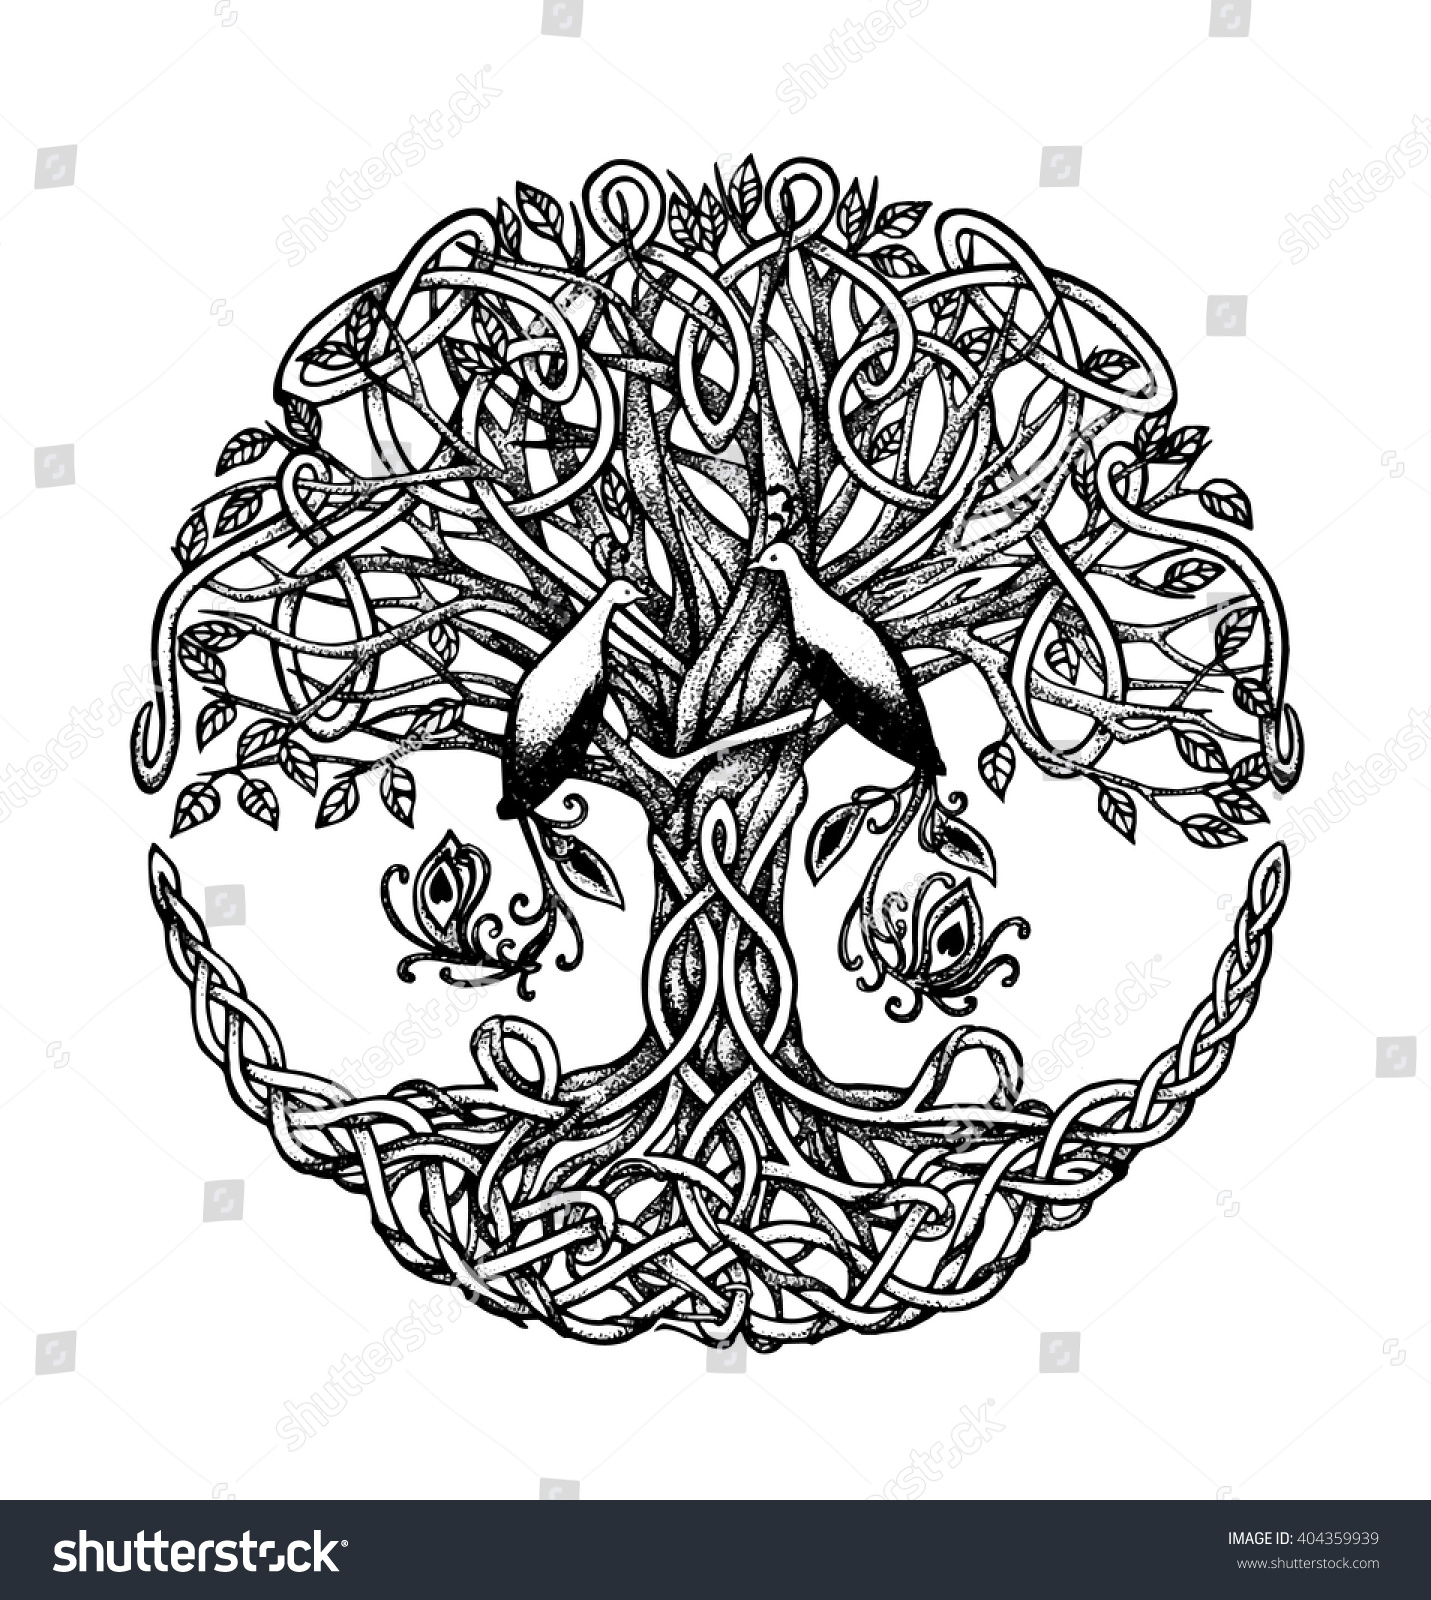 Tree Of Life Invitation Rsvp Celtic Life By: Celtic Tree Birds Paradise Graphic Arts Stock Vector